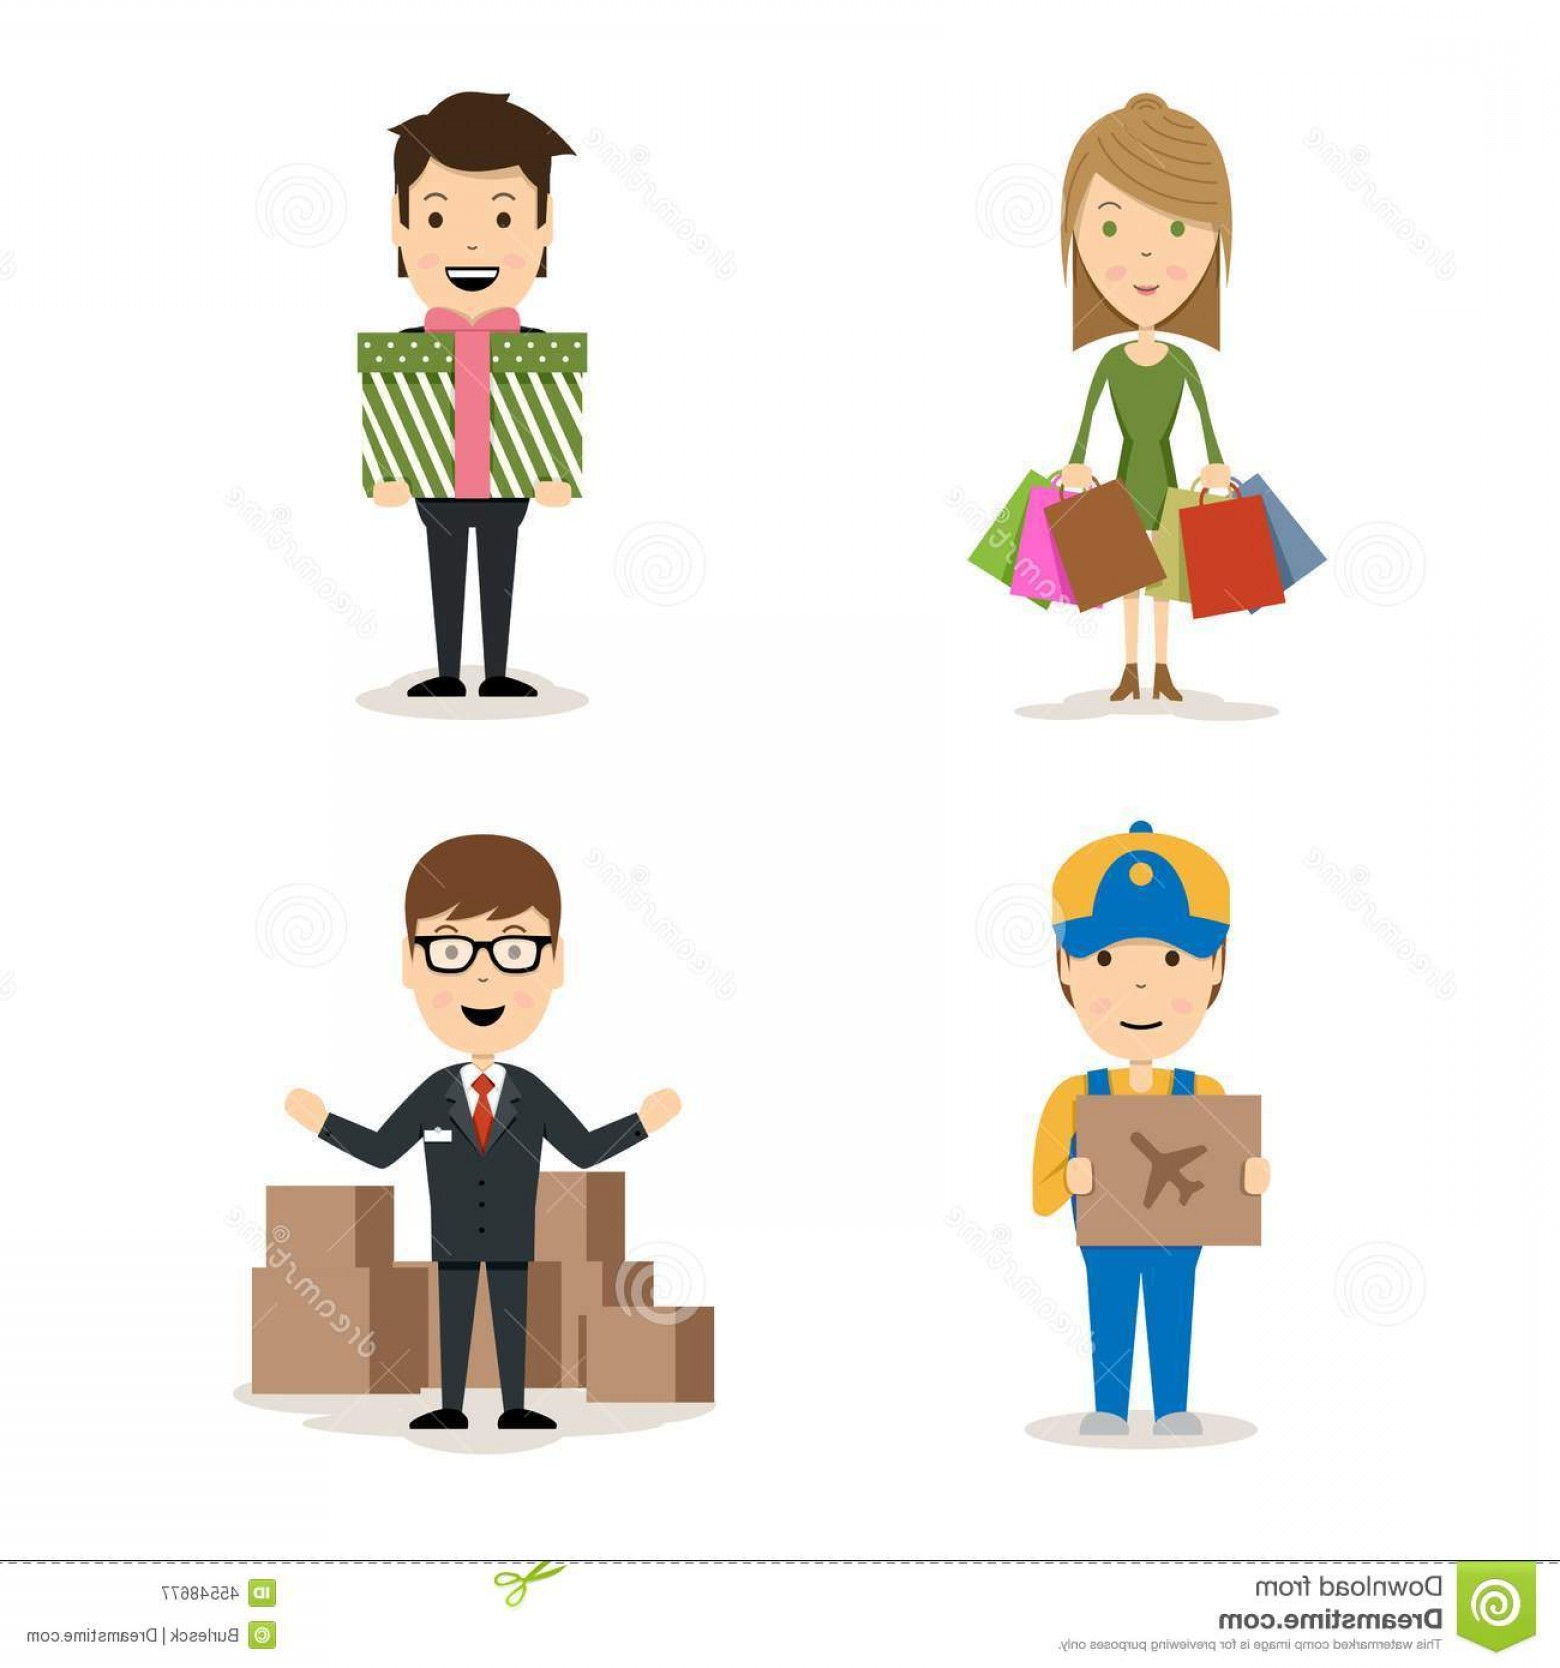 Vector People Man: Stock Illustration People Shopping Vector Characters Woman Bags Man Holding Gift Deliveryman Airfreight Package Image